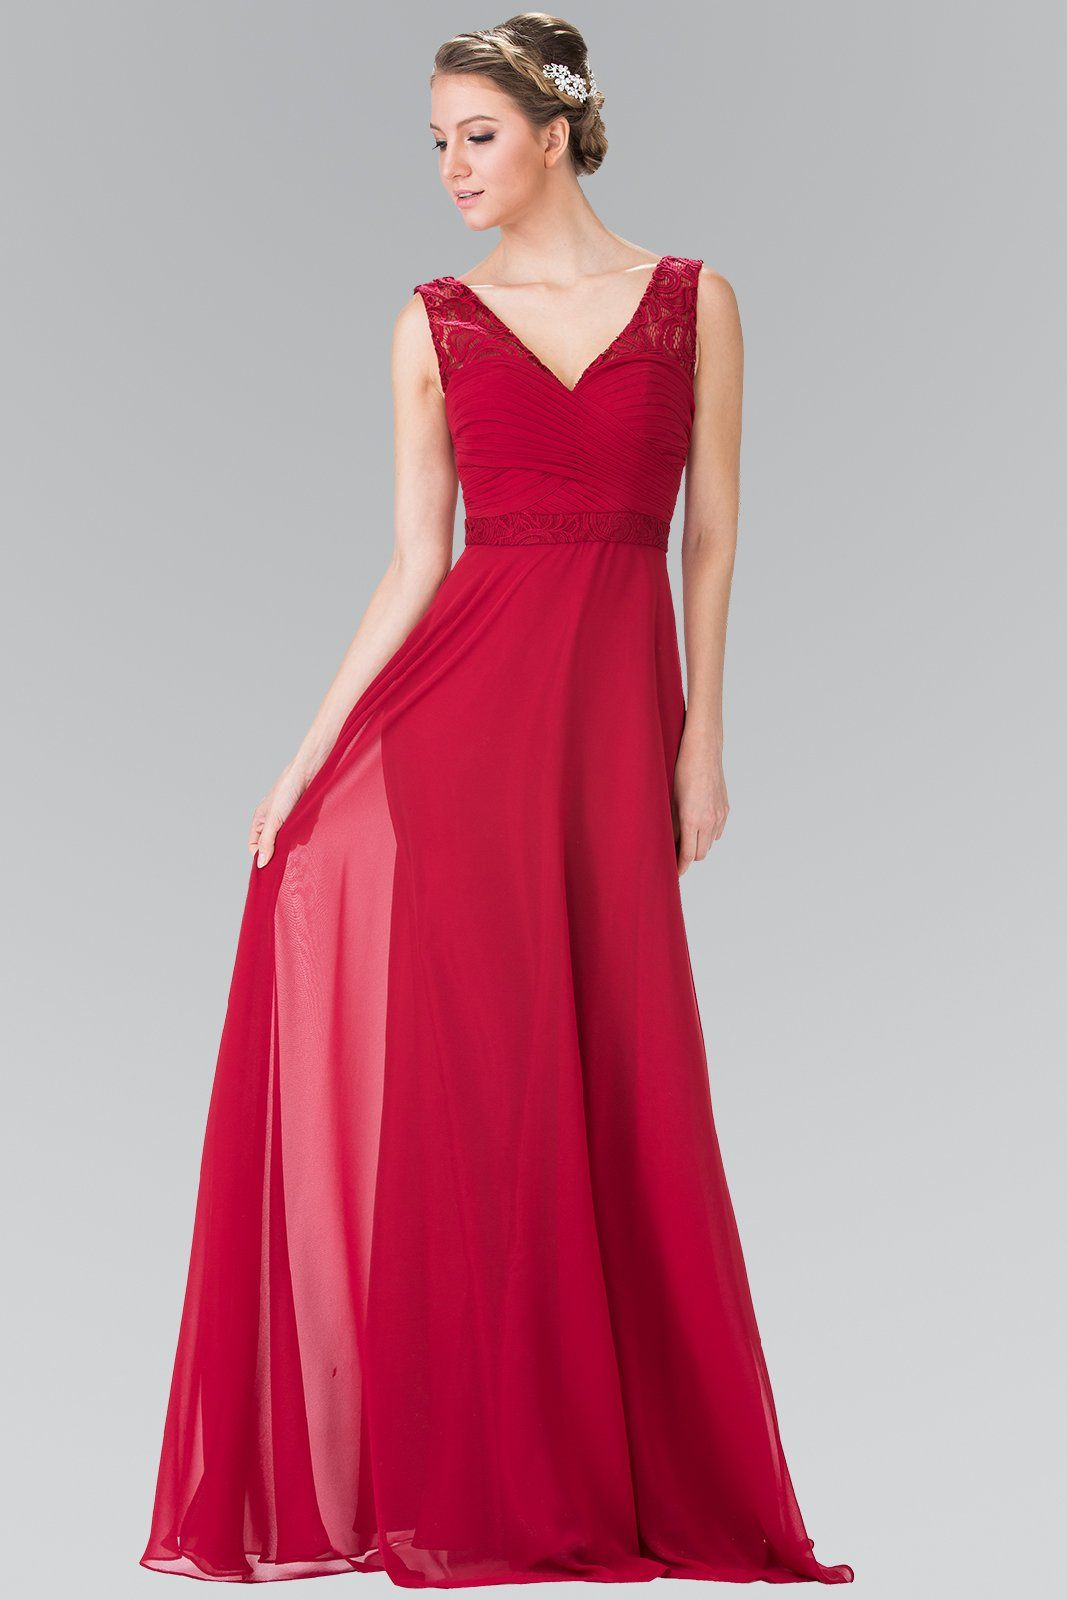 Burgundy long chiffon bridesmaid dress gl2363 simply fab dress burgundy cheap long chiffon bridesmaid dress gl2363 simply fab dress ombrellifo Image collections